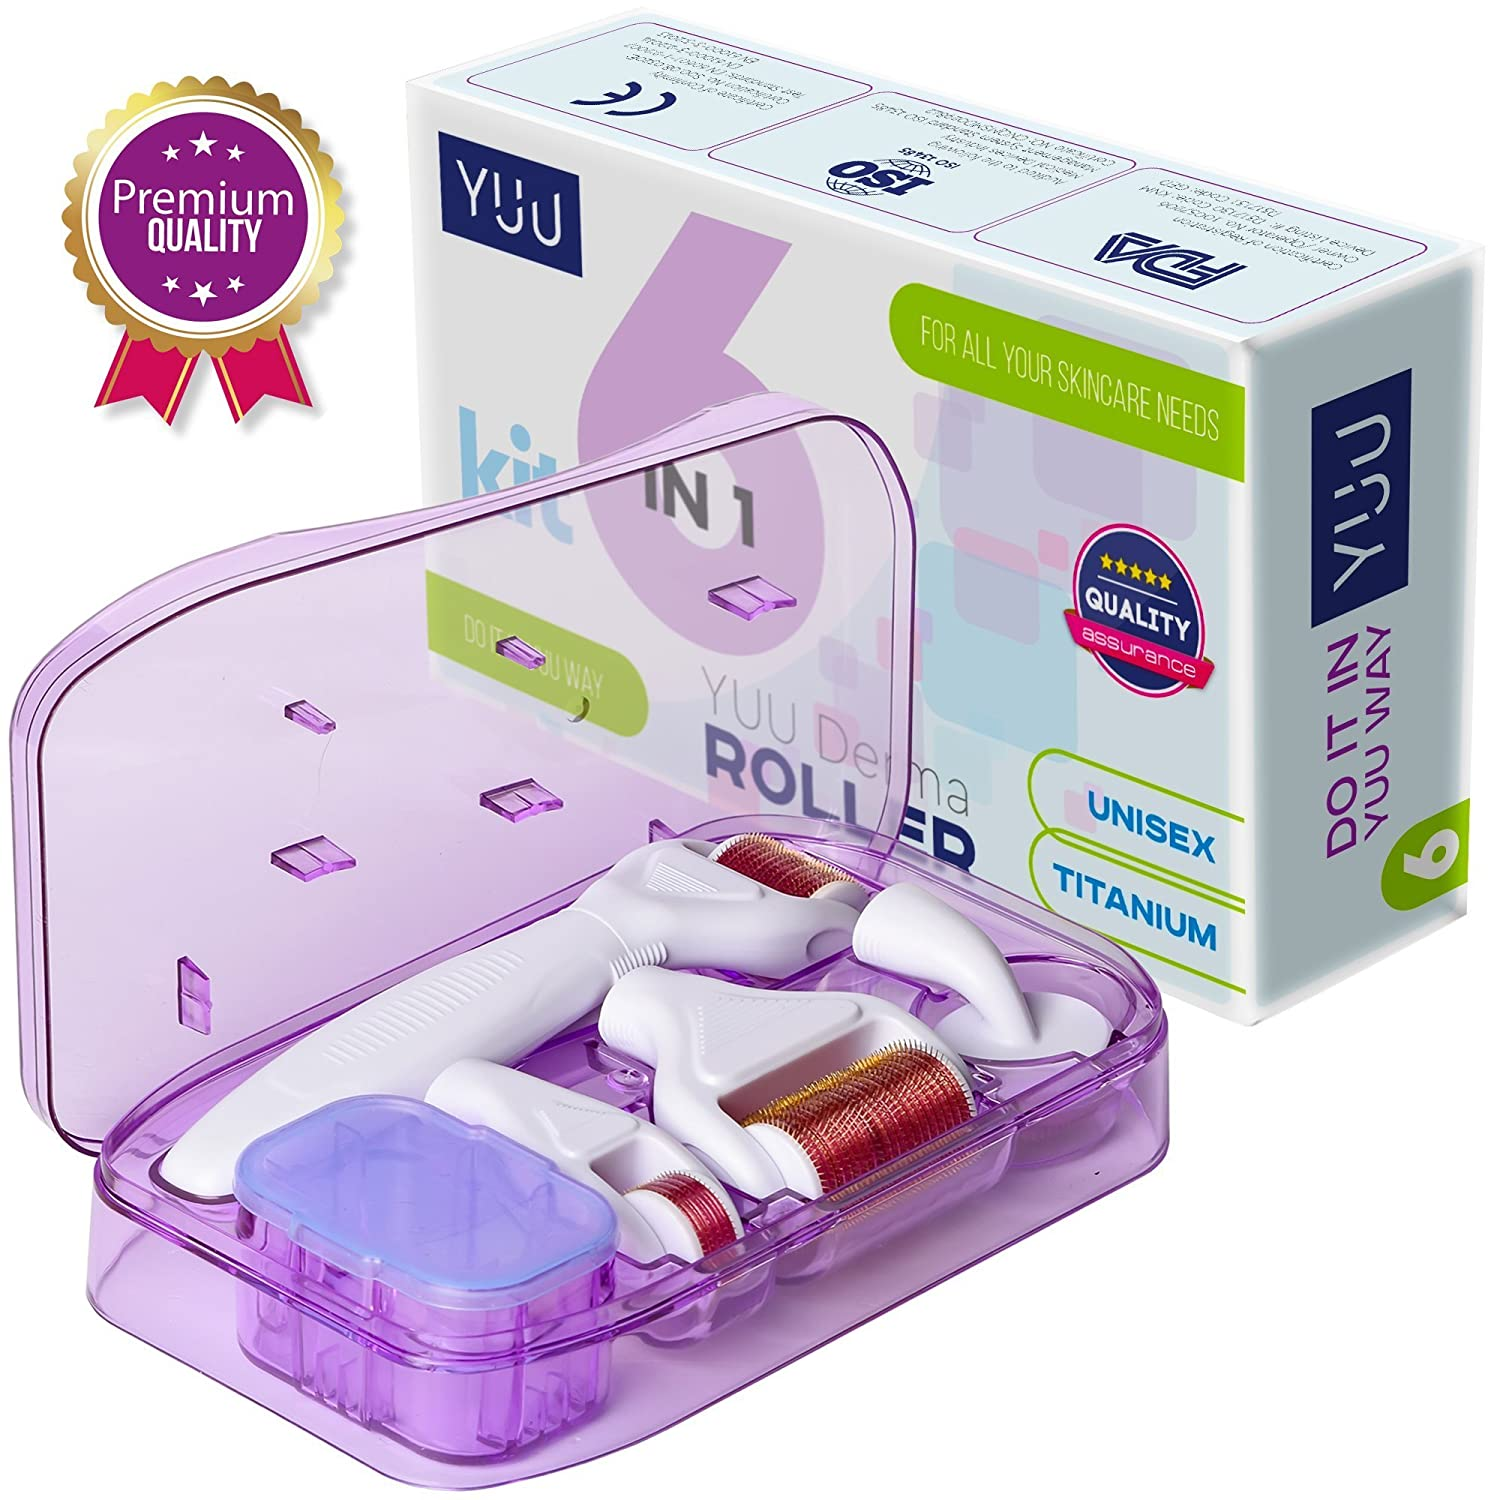 YUU Premium Derma Roller - 6 In 1 Kit for Face and Body with 4 Titanium Needle Heads, Silicone Brush and Disinfecting Tray in a Sterile Sealed Case